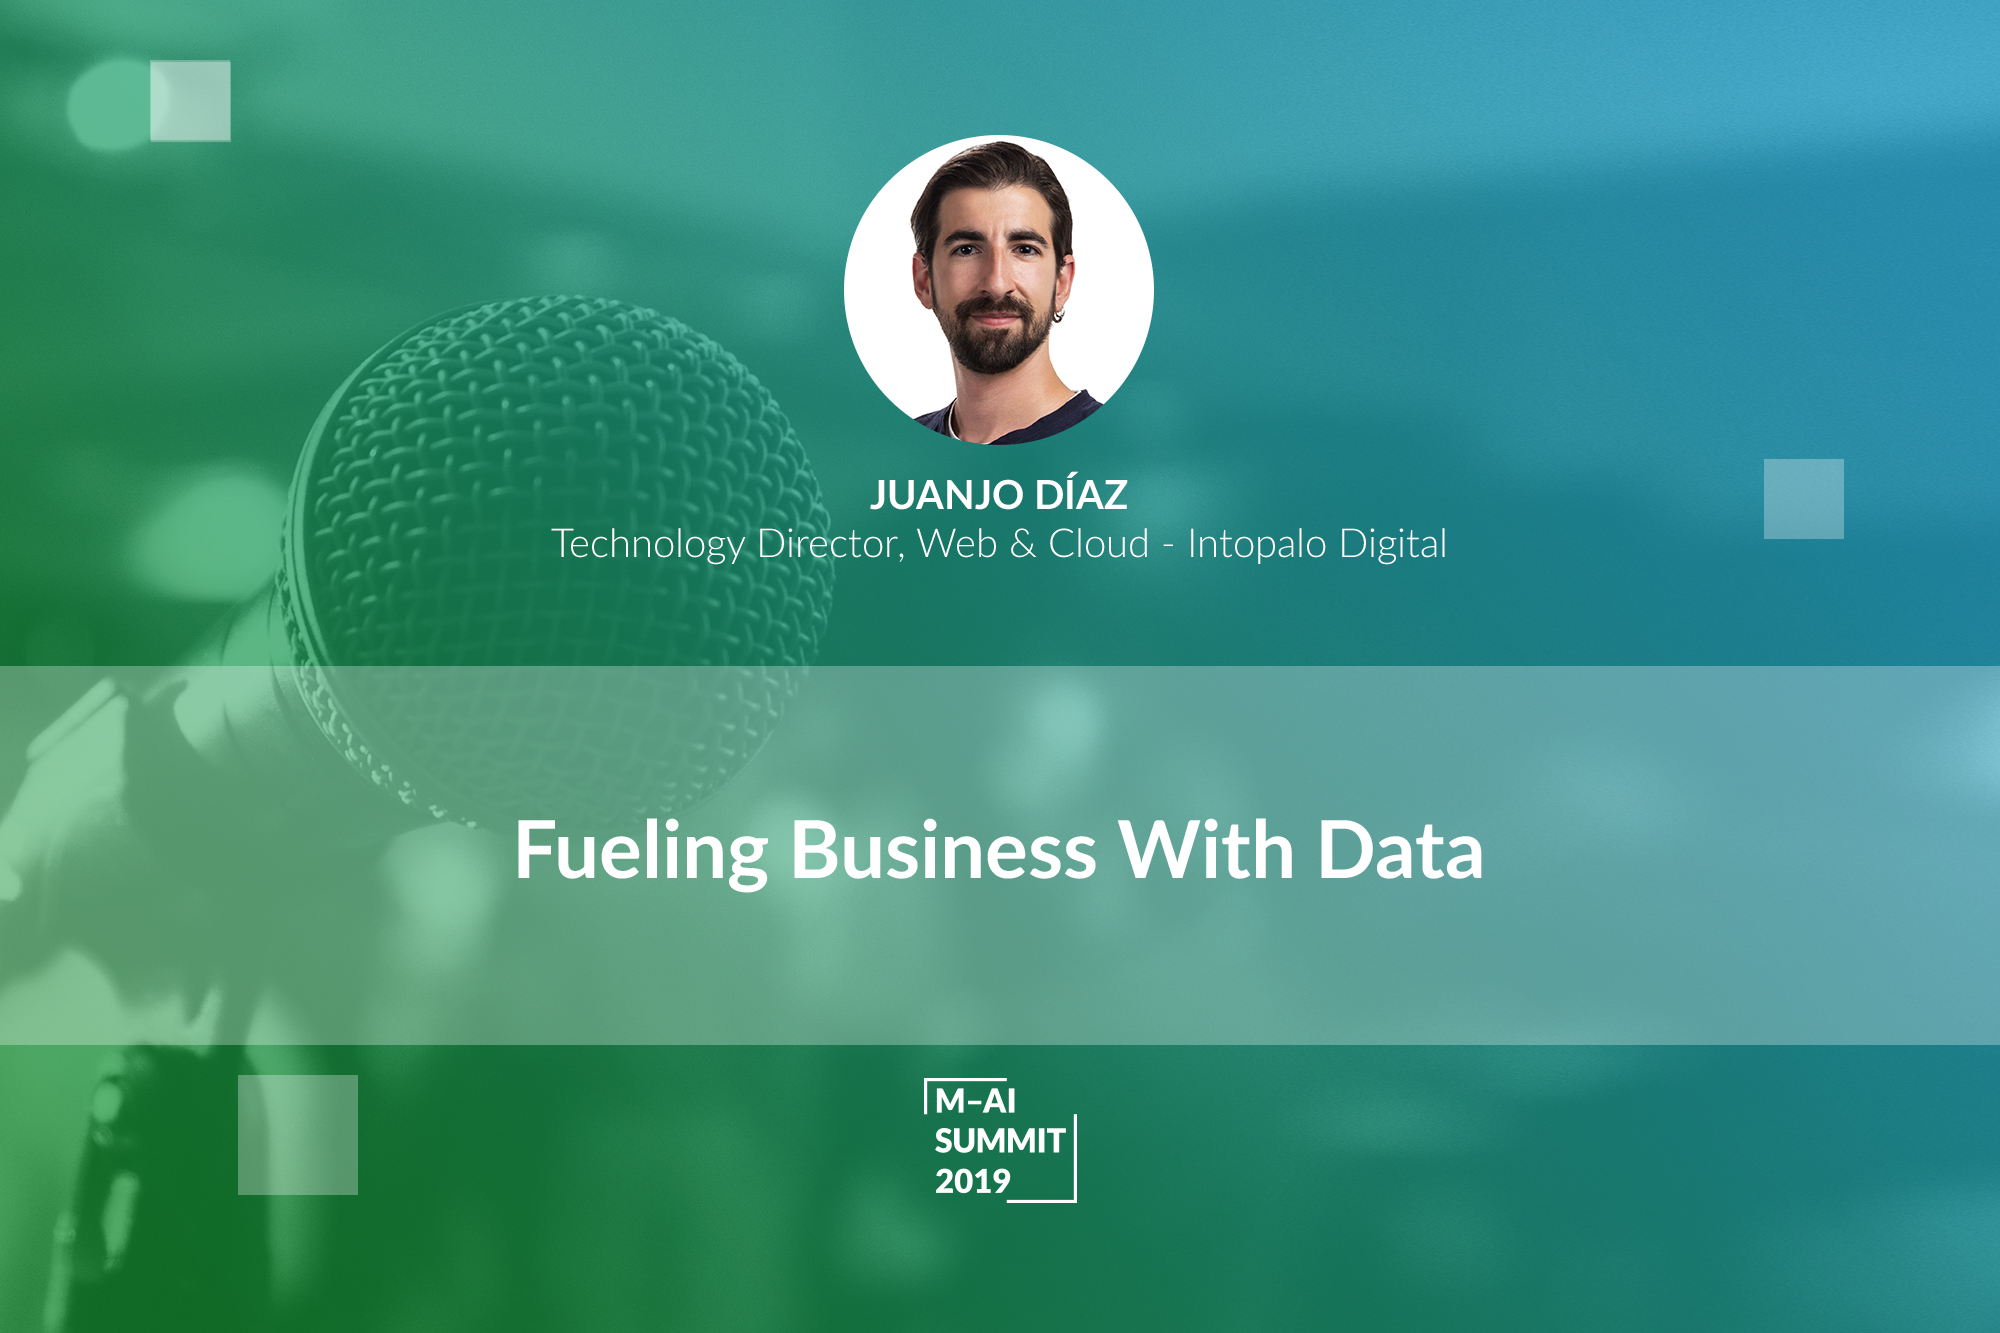 Digitizing Your Business is Not Enough Anymore. Juanjo Diaz Emphasizes the Importance of Adopting New Data-driven Solutions